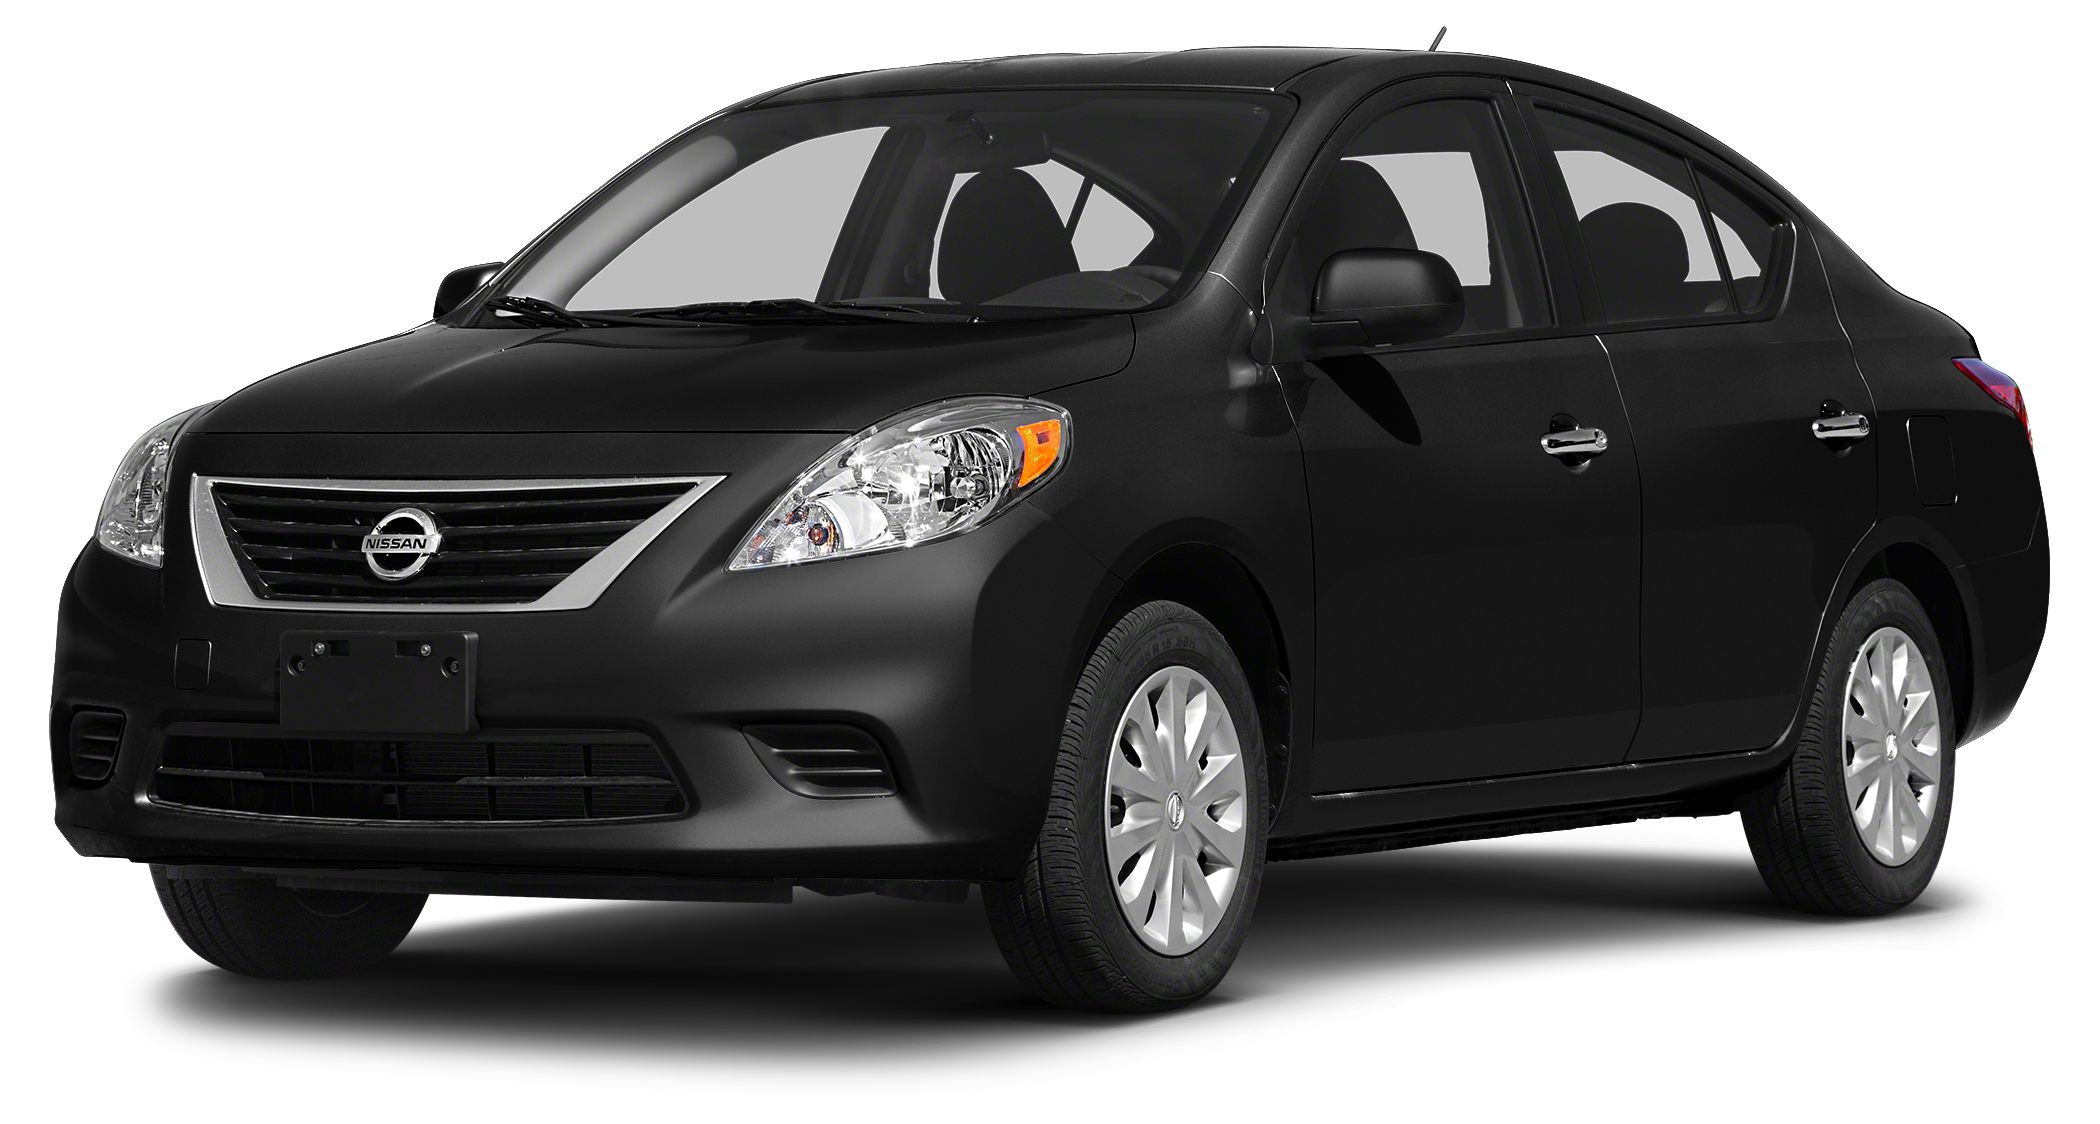 2014 Nissan Versa 16 SV Vehicle Detailed Recent Oil Change and Passed Dealer Inspection Looks